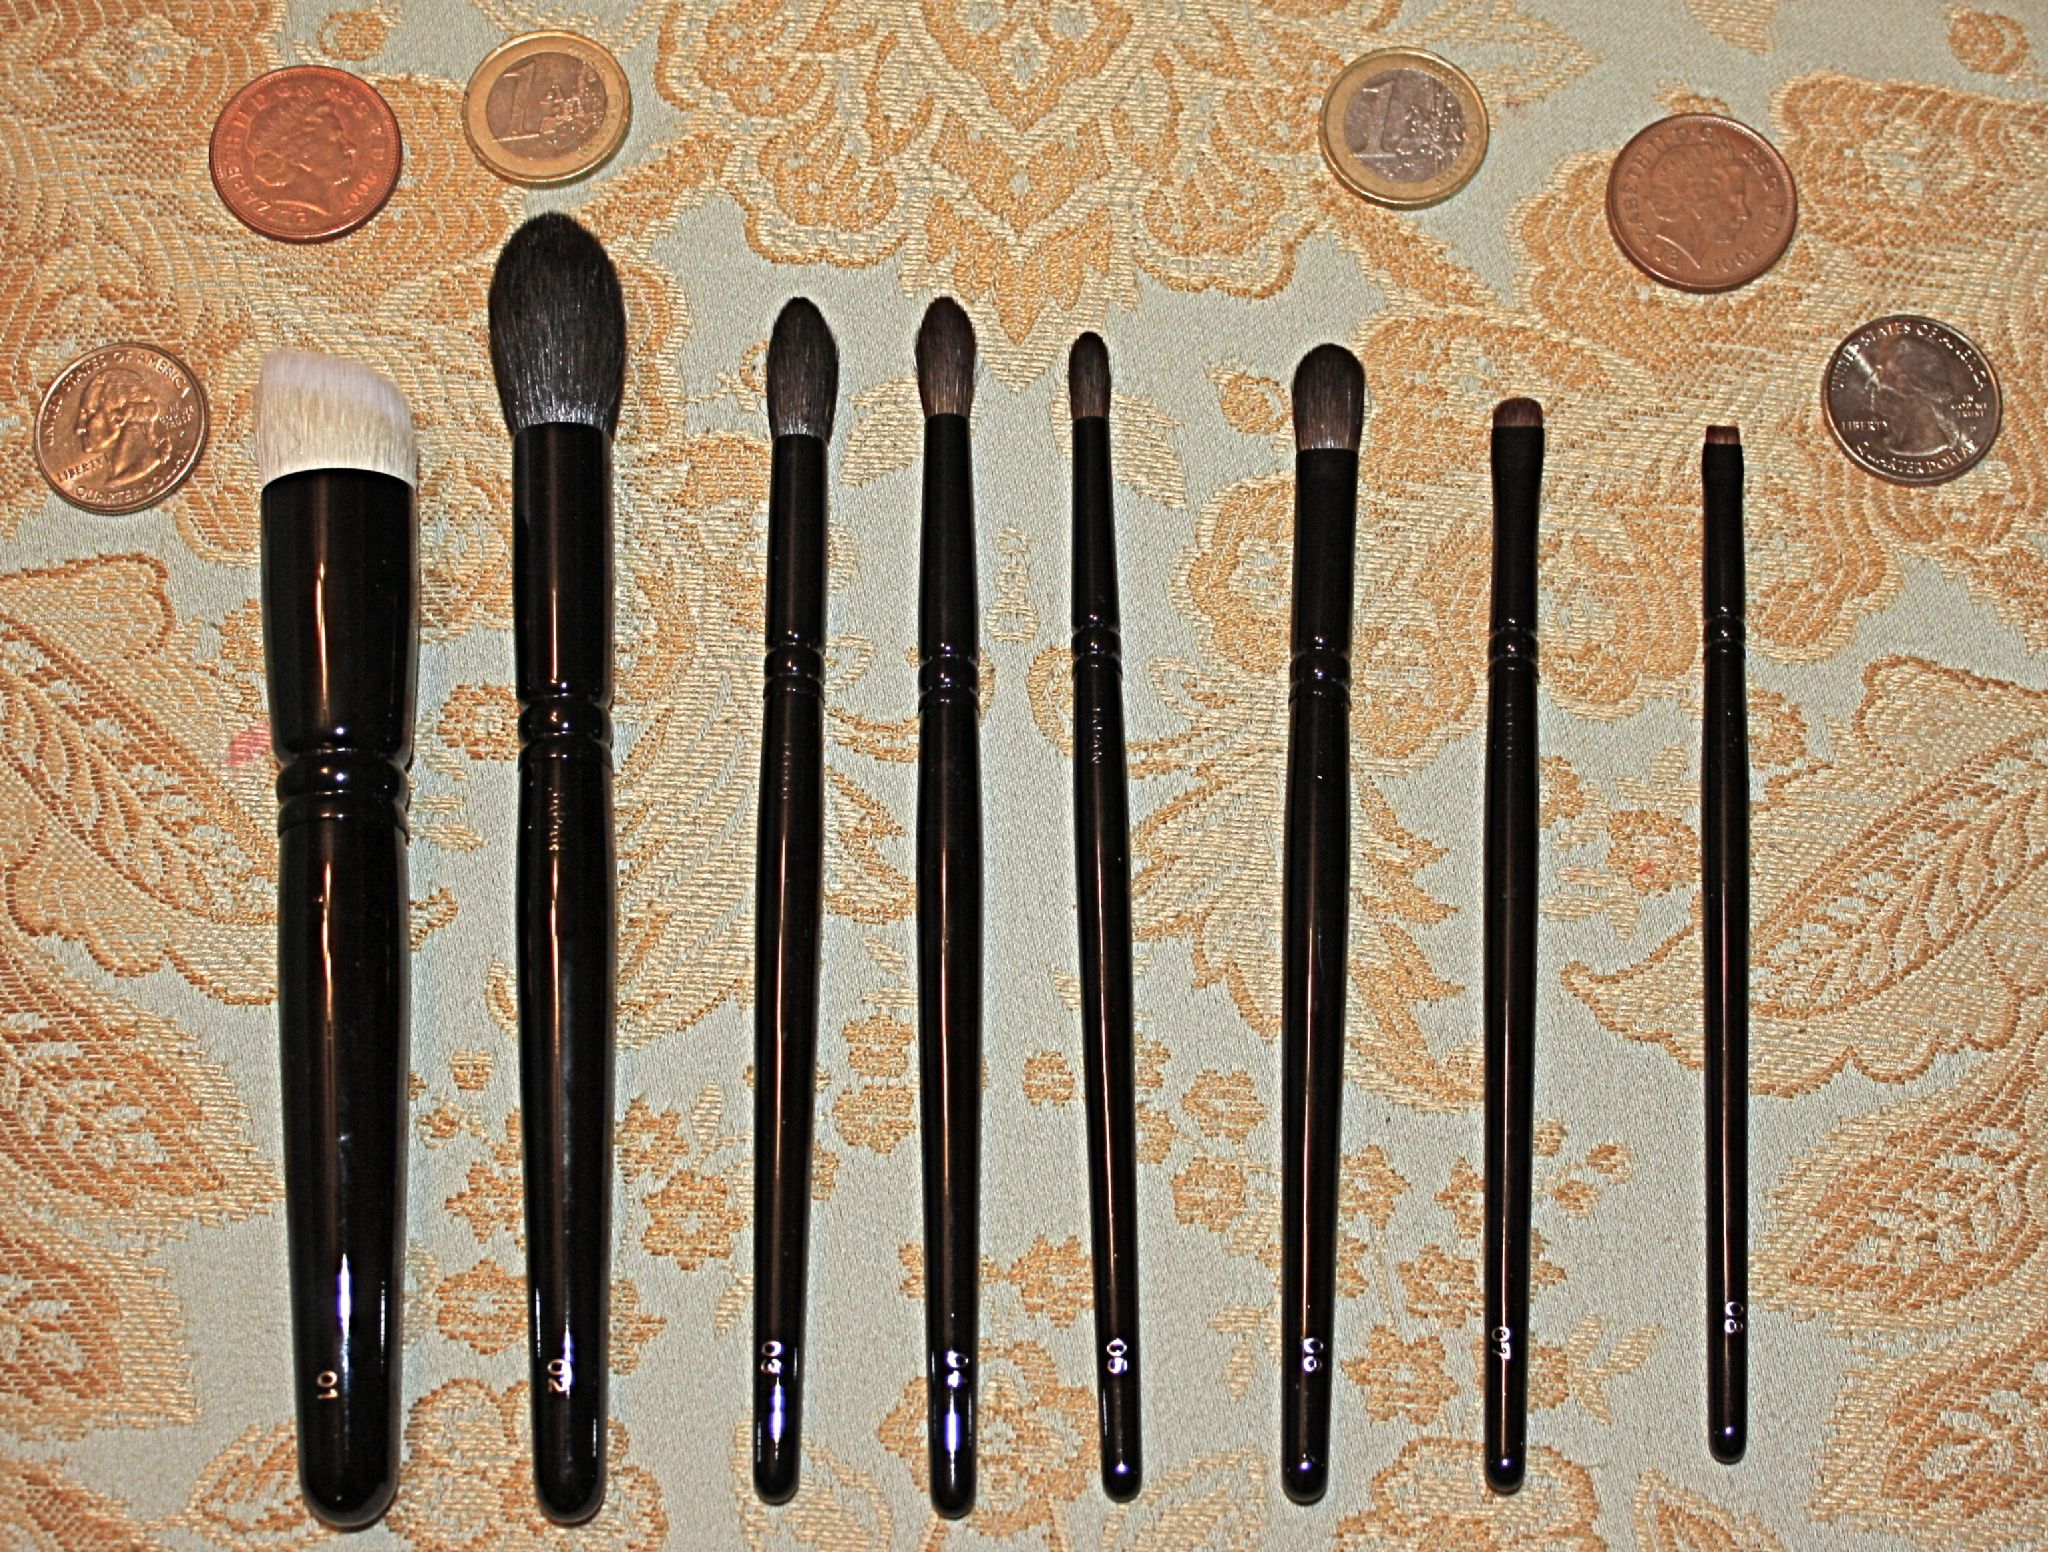 Wayne Goss brush collection (Uploaded by A88A)